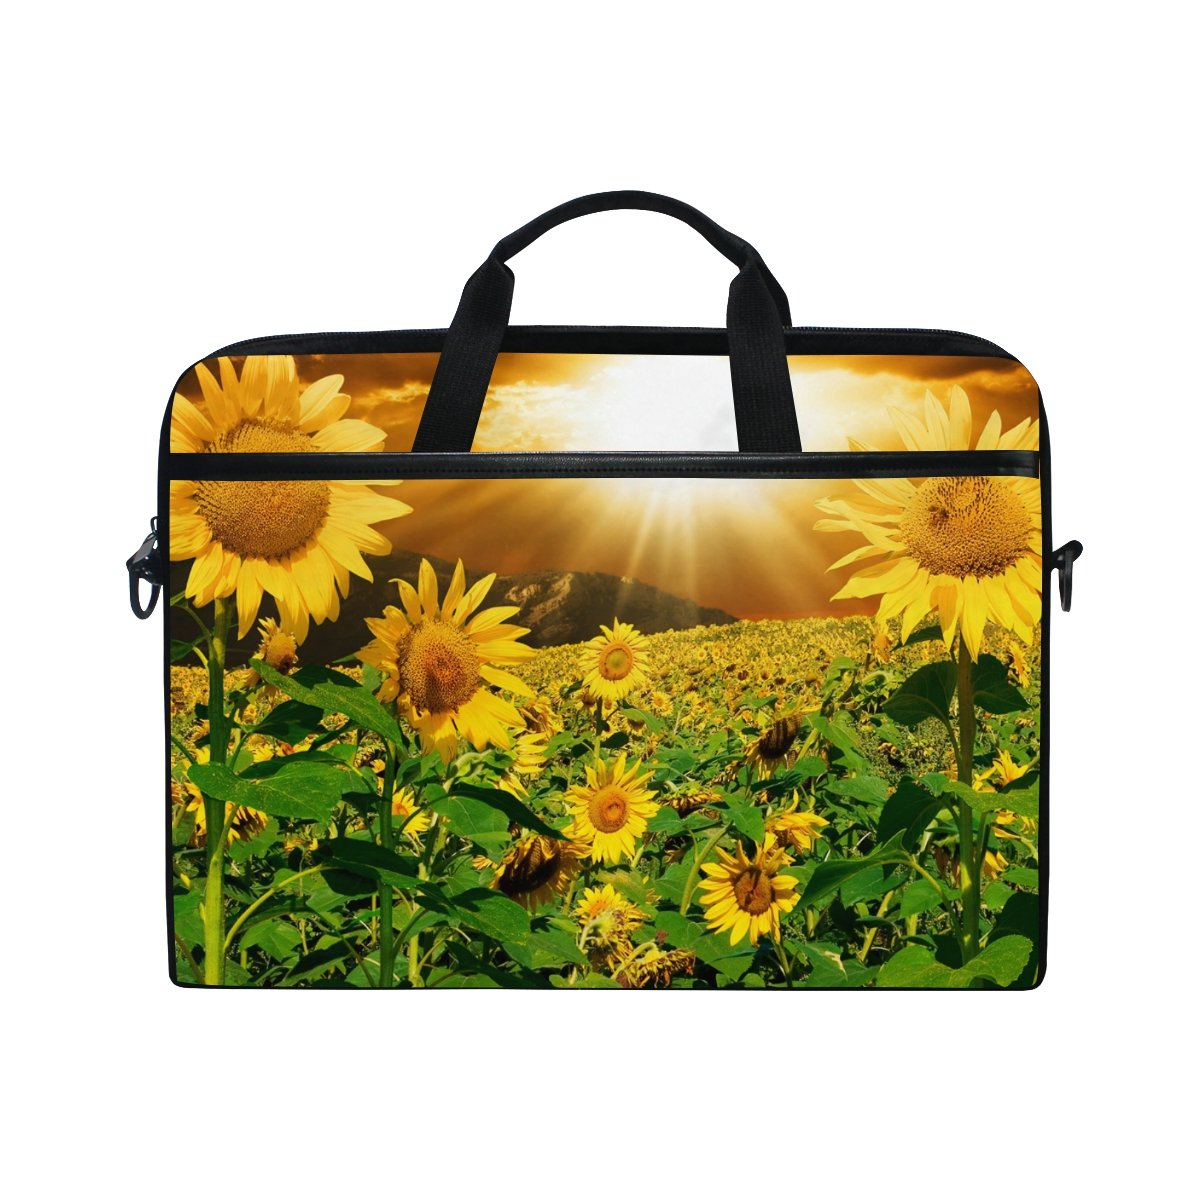 8b41848872b1 YZGO 15 15.6 inch Laptop Briefcase,Sunset Sunflowers Field Print ...